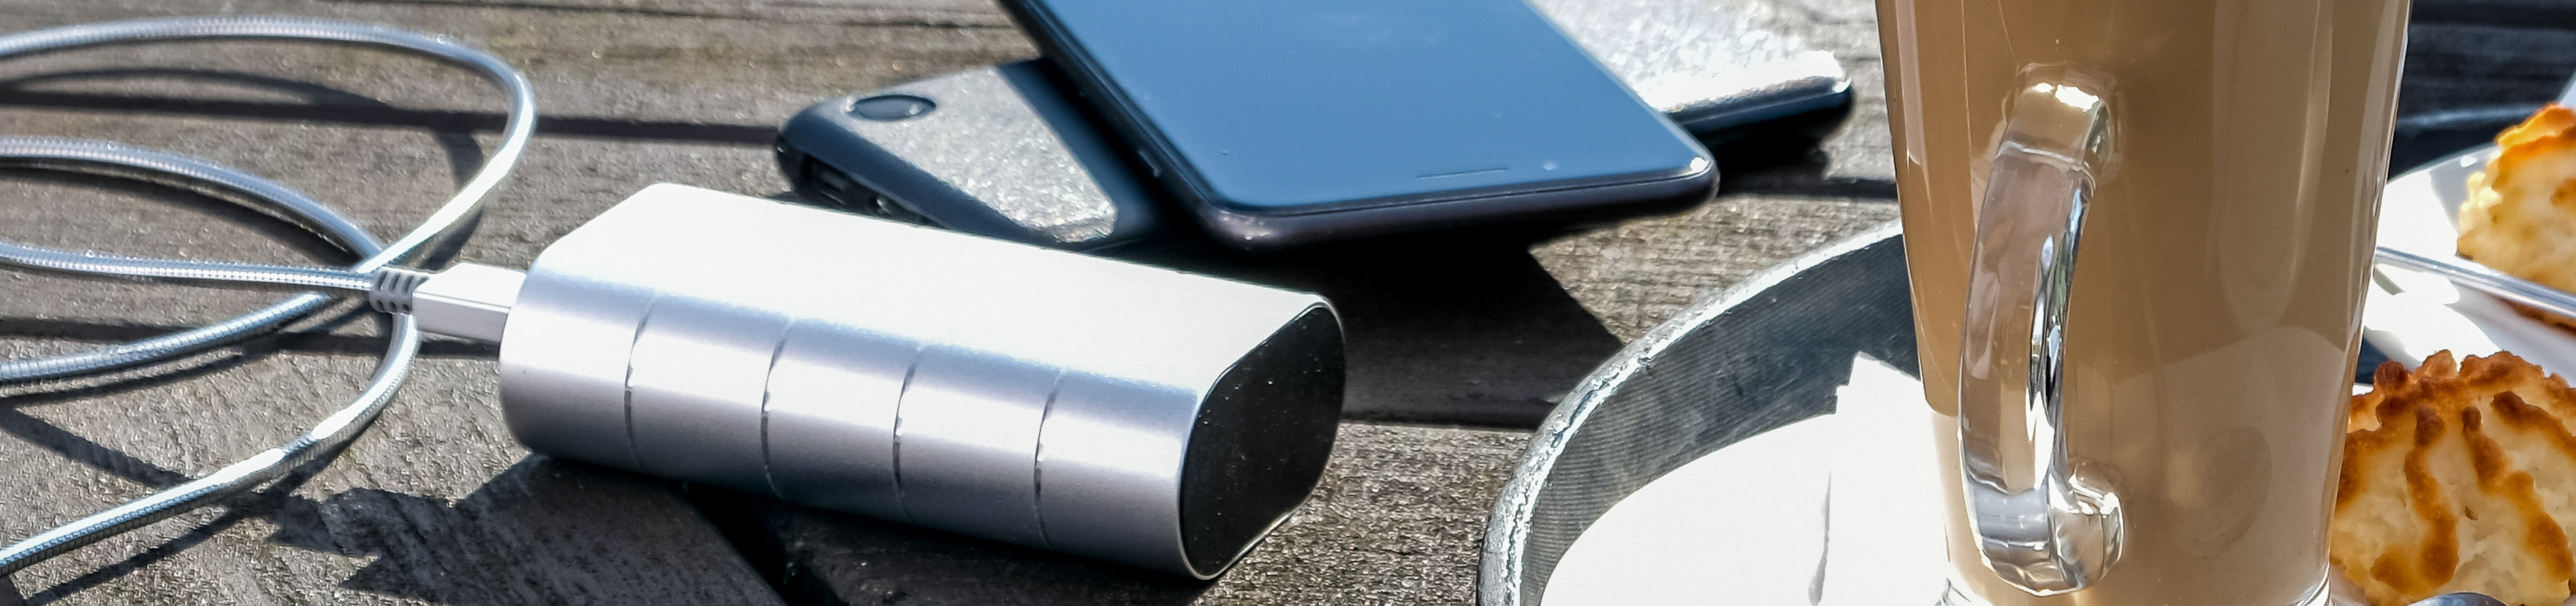 Wireless Charging Pad - Rubber